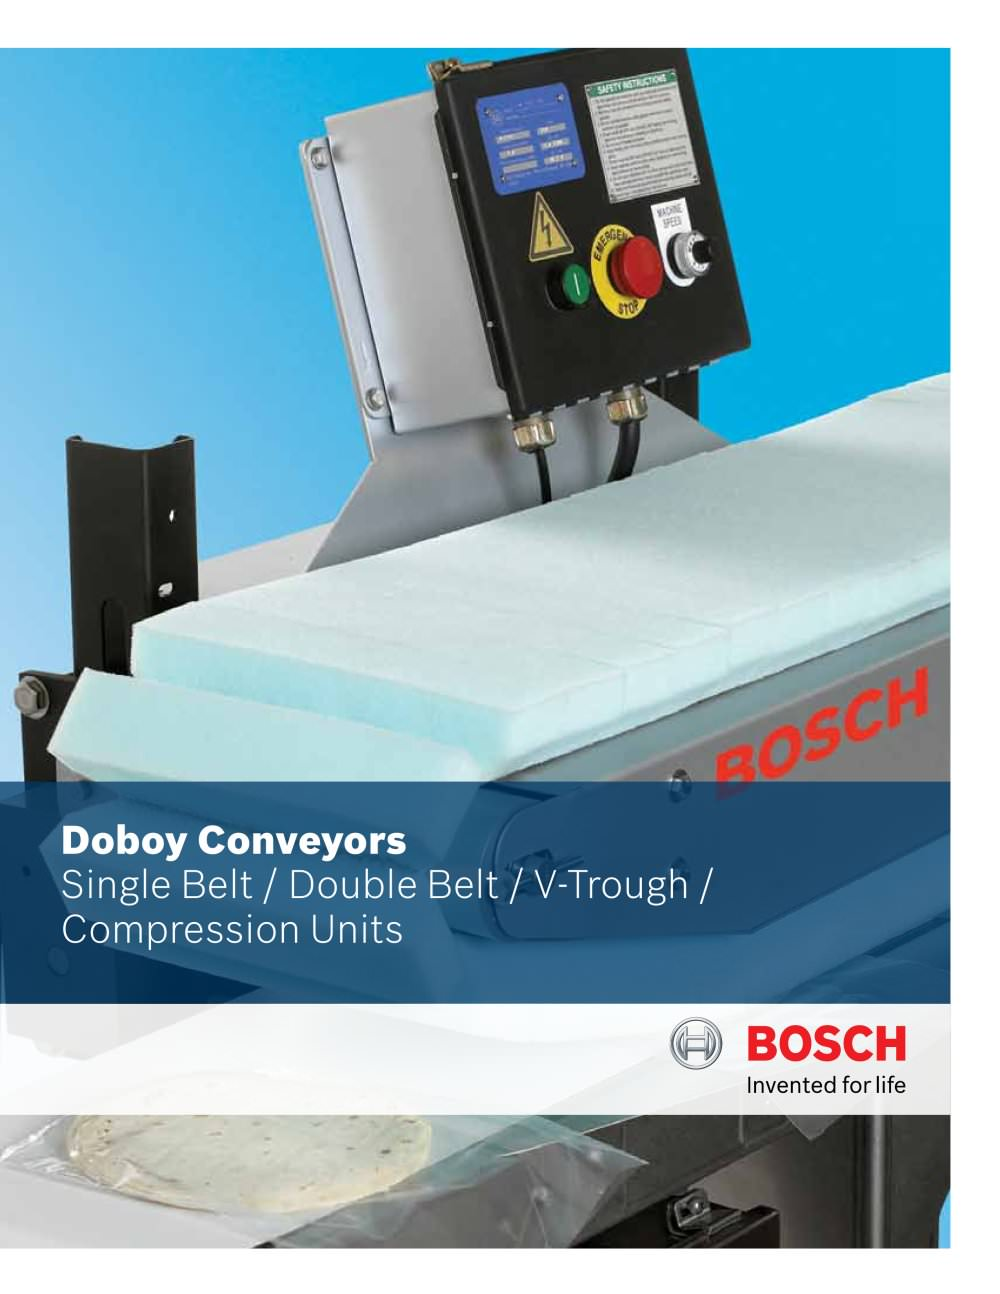 Doboy Conveyors - 1 / 4 Pages